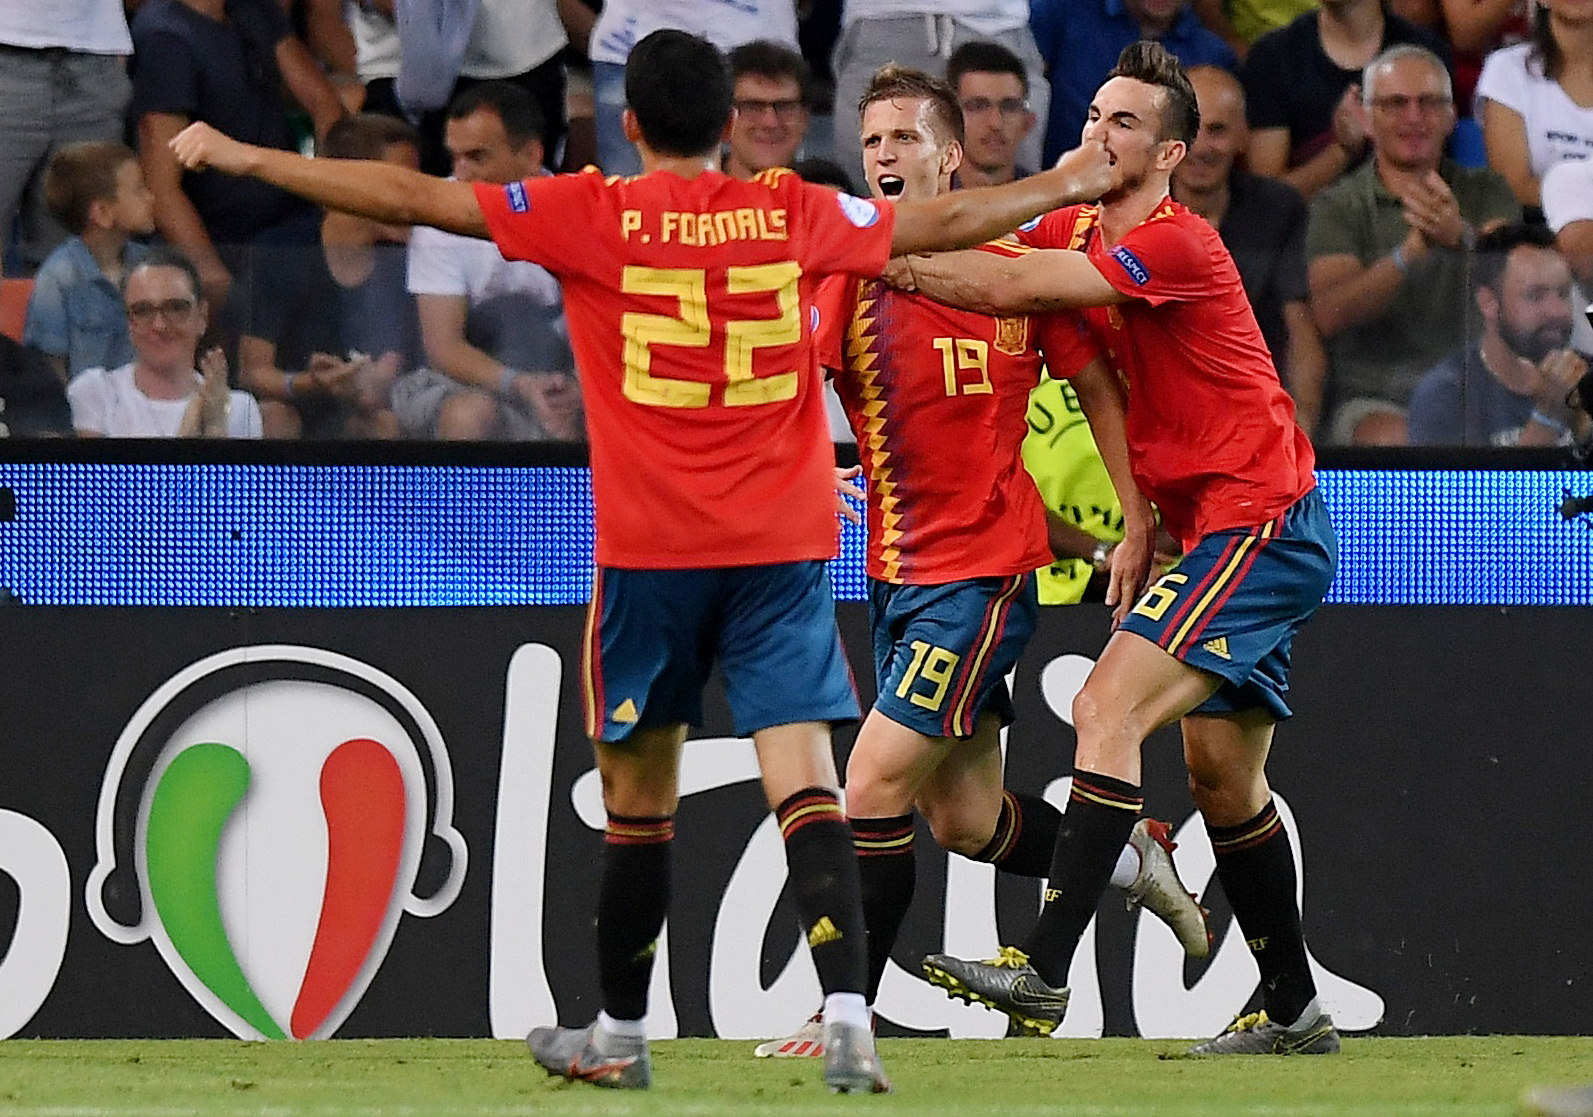 Soccer Football - 2019 UEFA European Under-21 Championship - Final - Spain v Germany - Dacia Arena, Udine, Italy - June 30, 2019  Spain's Dani Olmo celebrates scoring their second goal with Fabian Ruiz and Pablo Fornals   REUTERS/Alberto Lingria